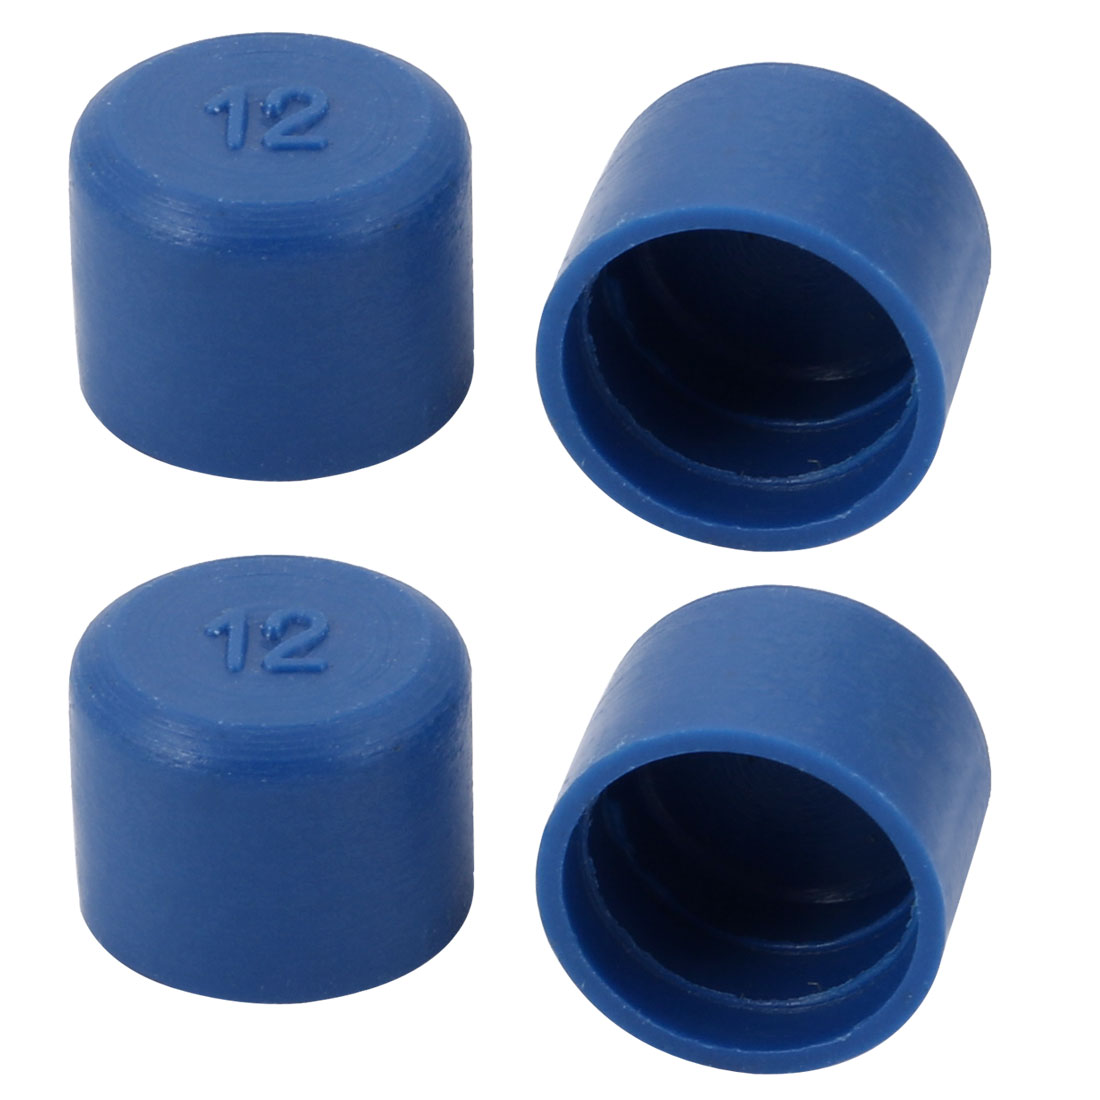 4pcs 12mm Inner Dia PE Plastic End Cap Bolt Thread Protector Tube Cover Blue